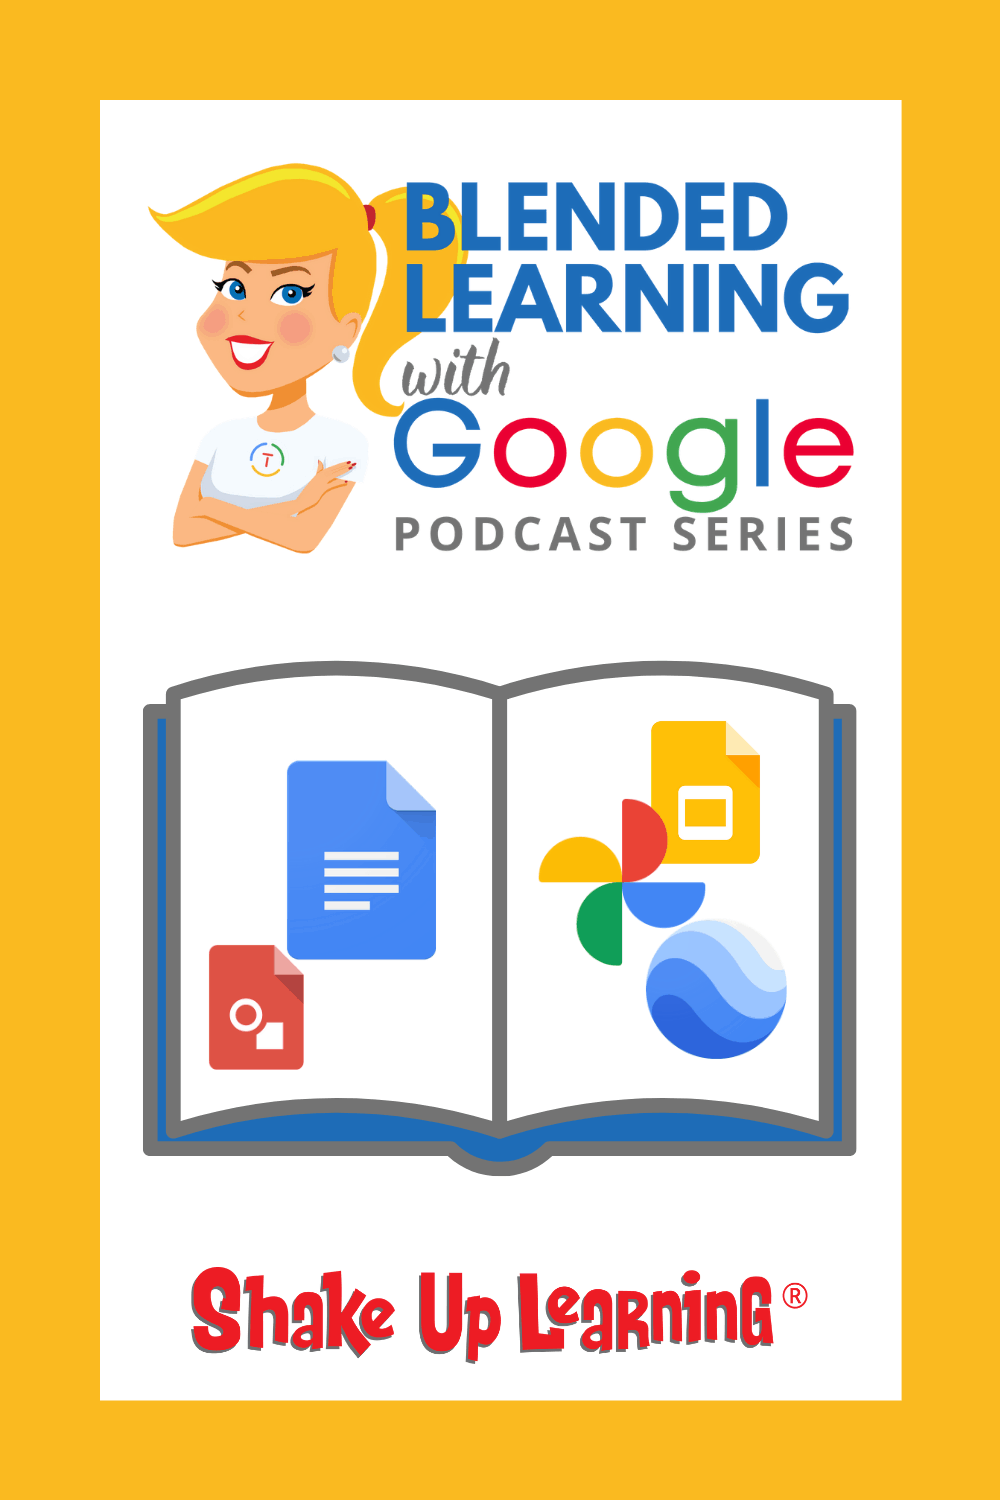 Blended Learning with Google (Part 2: Storytelling) – SULS089